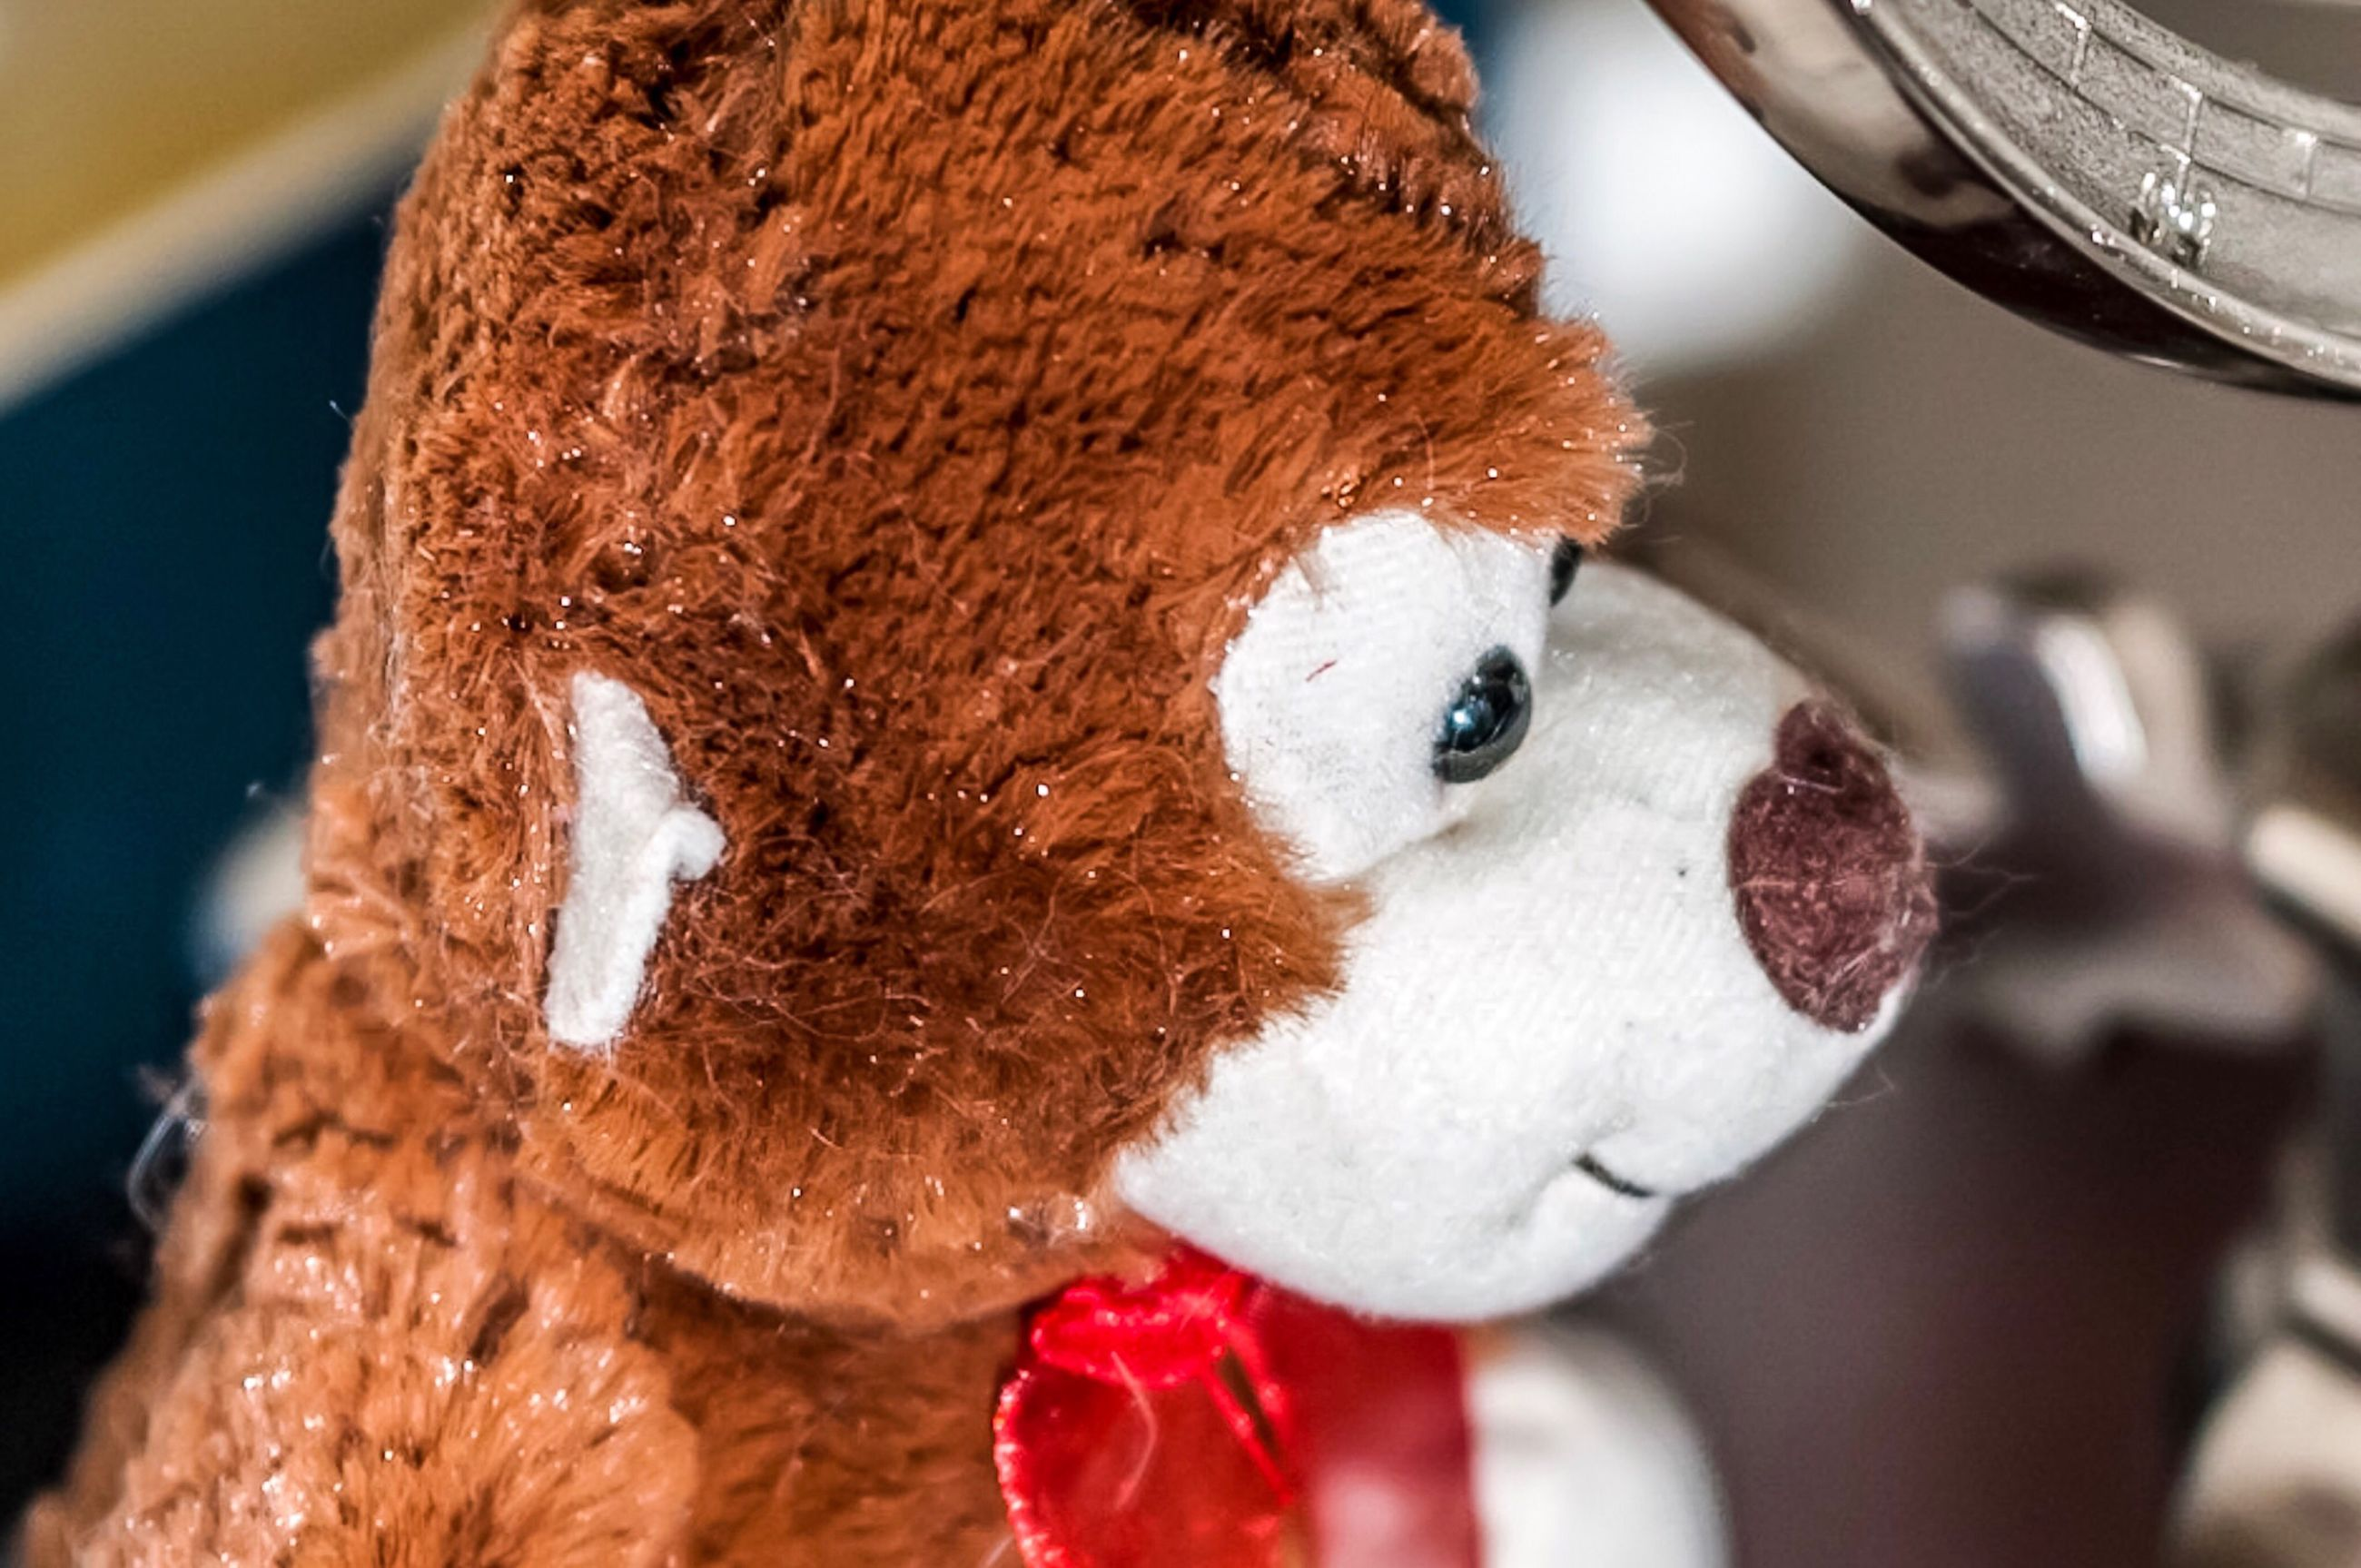 indoors, stuffed toy, close-up, childhood, teddy bear, no people, day